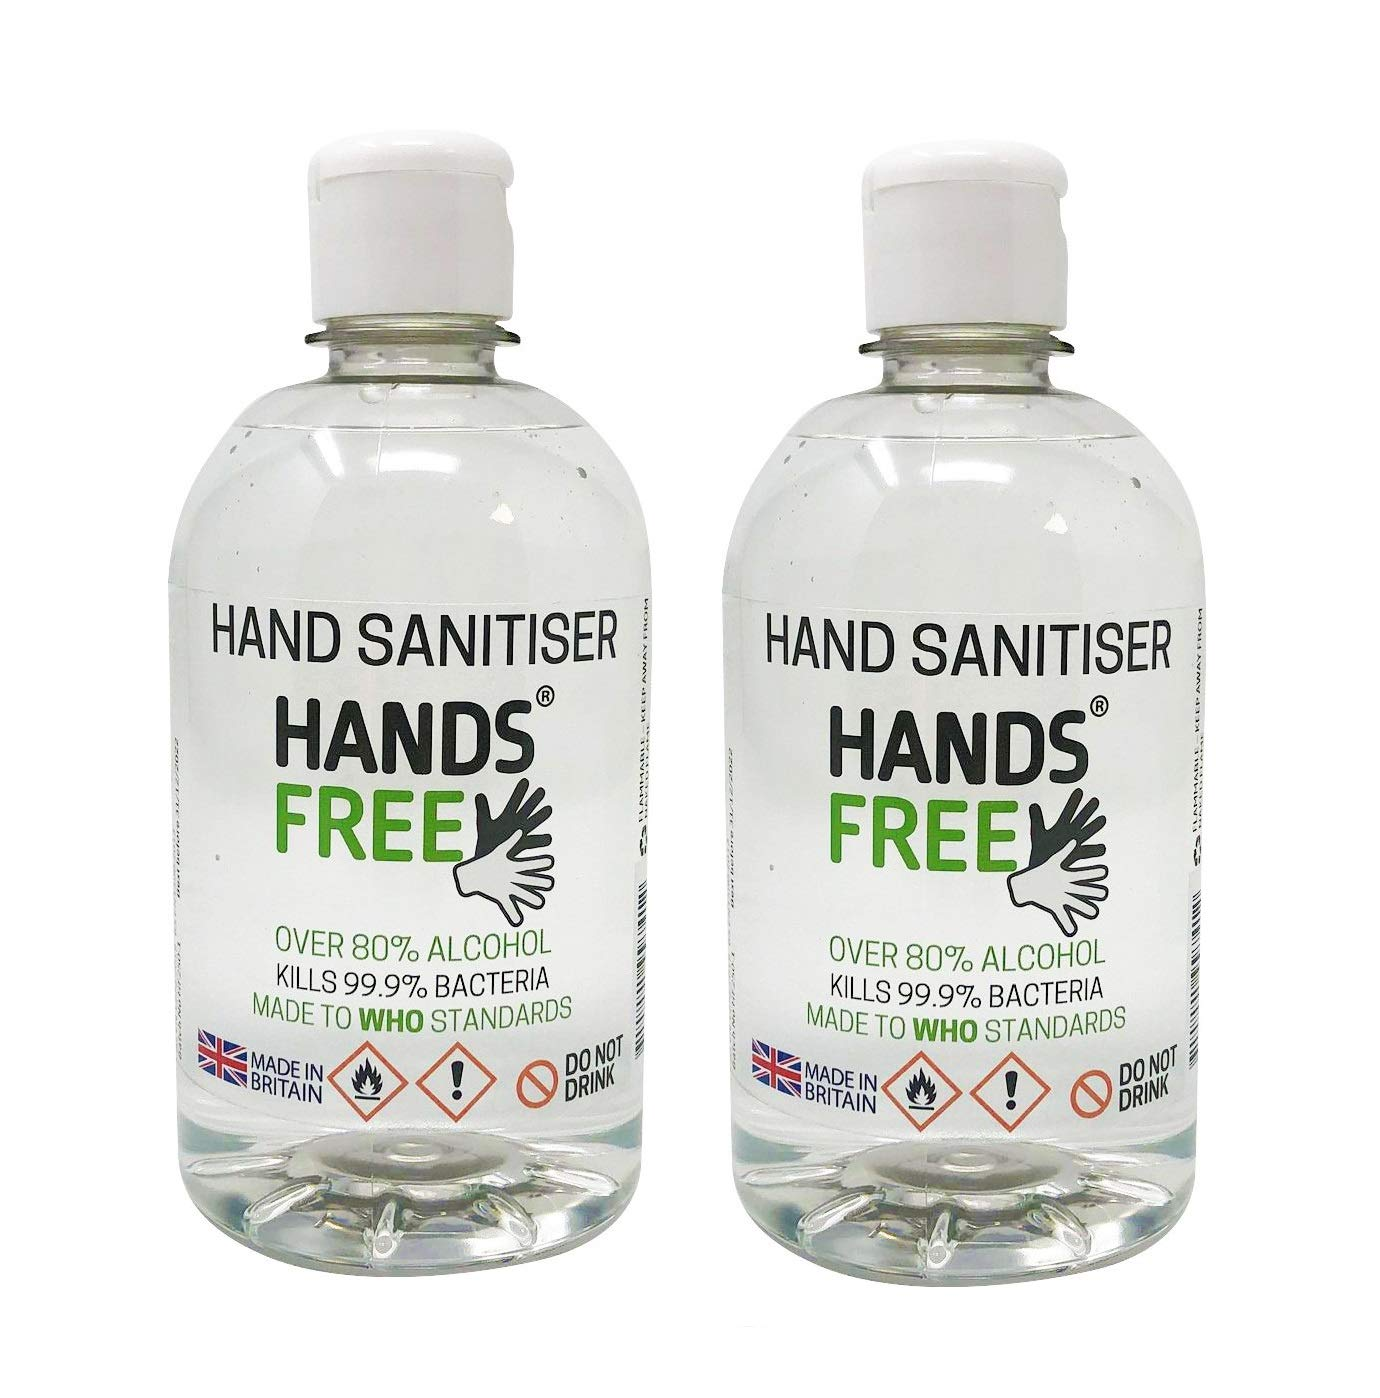 2x500ml 80% Alcohol Hand Sanitiser by Hands Free - Antibacterial Formula Kills 99.9% of Bacteria - MADE IN BRITAIN - (Multi Twin Pack)